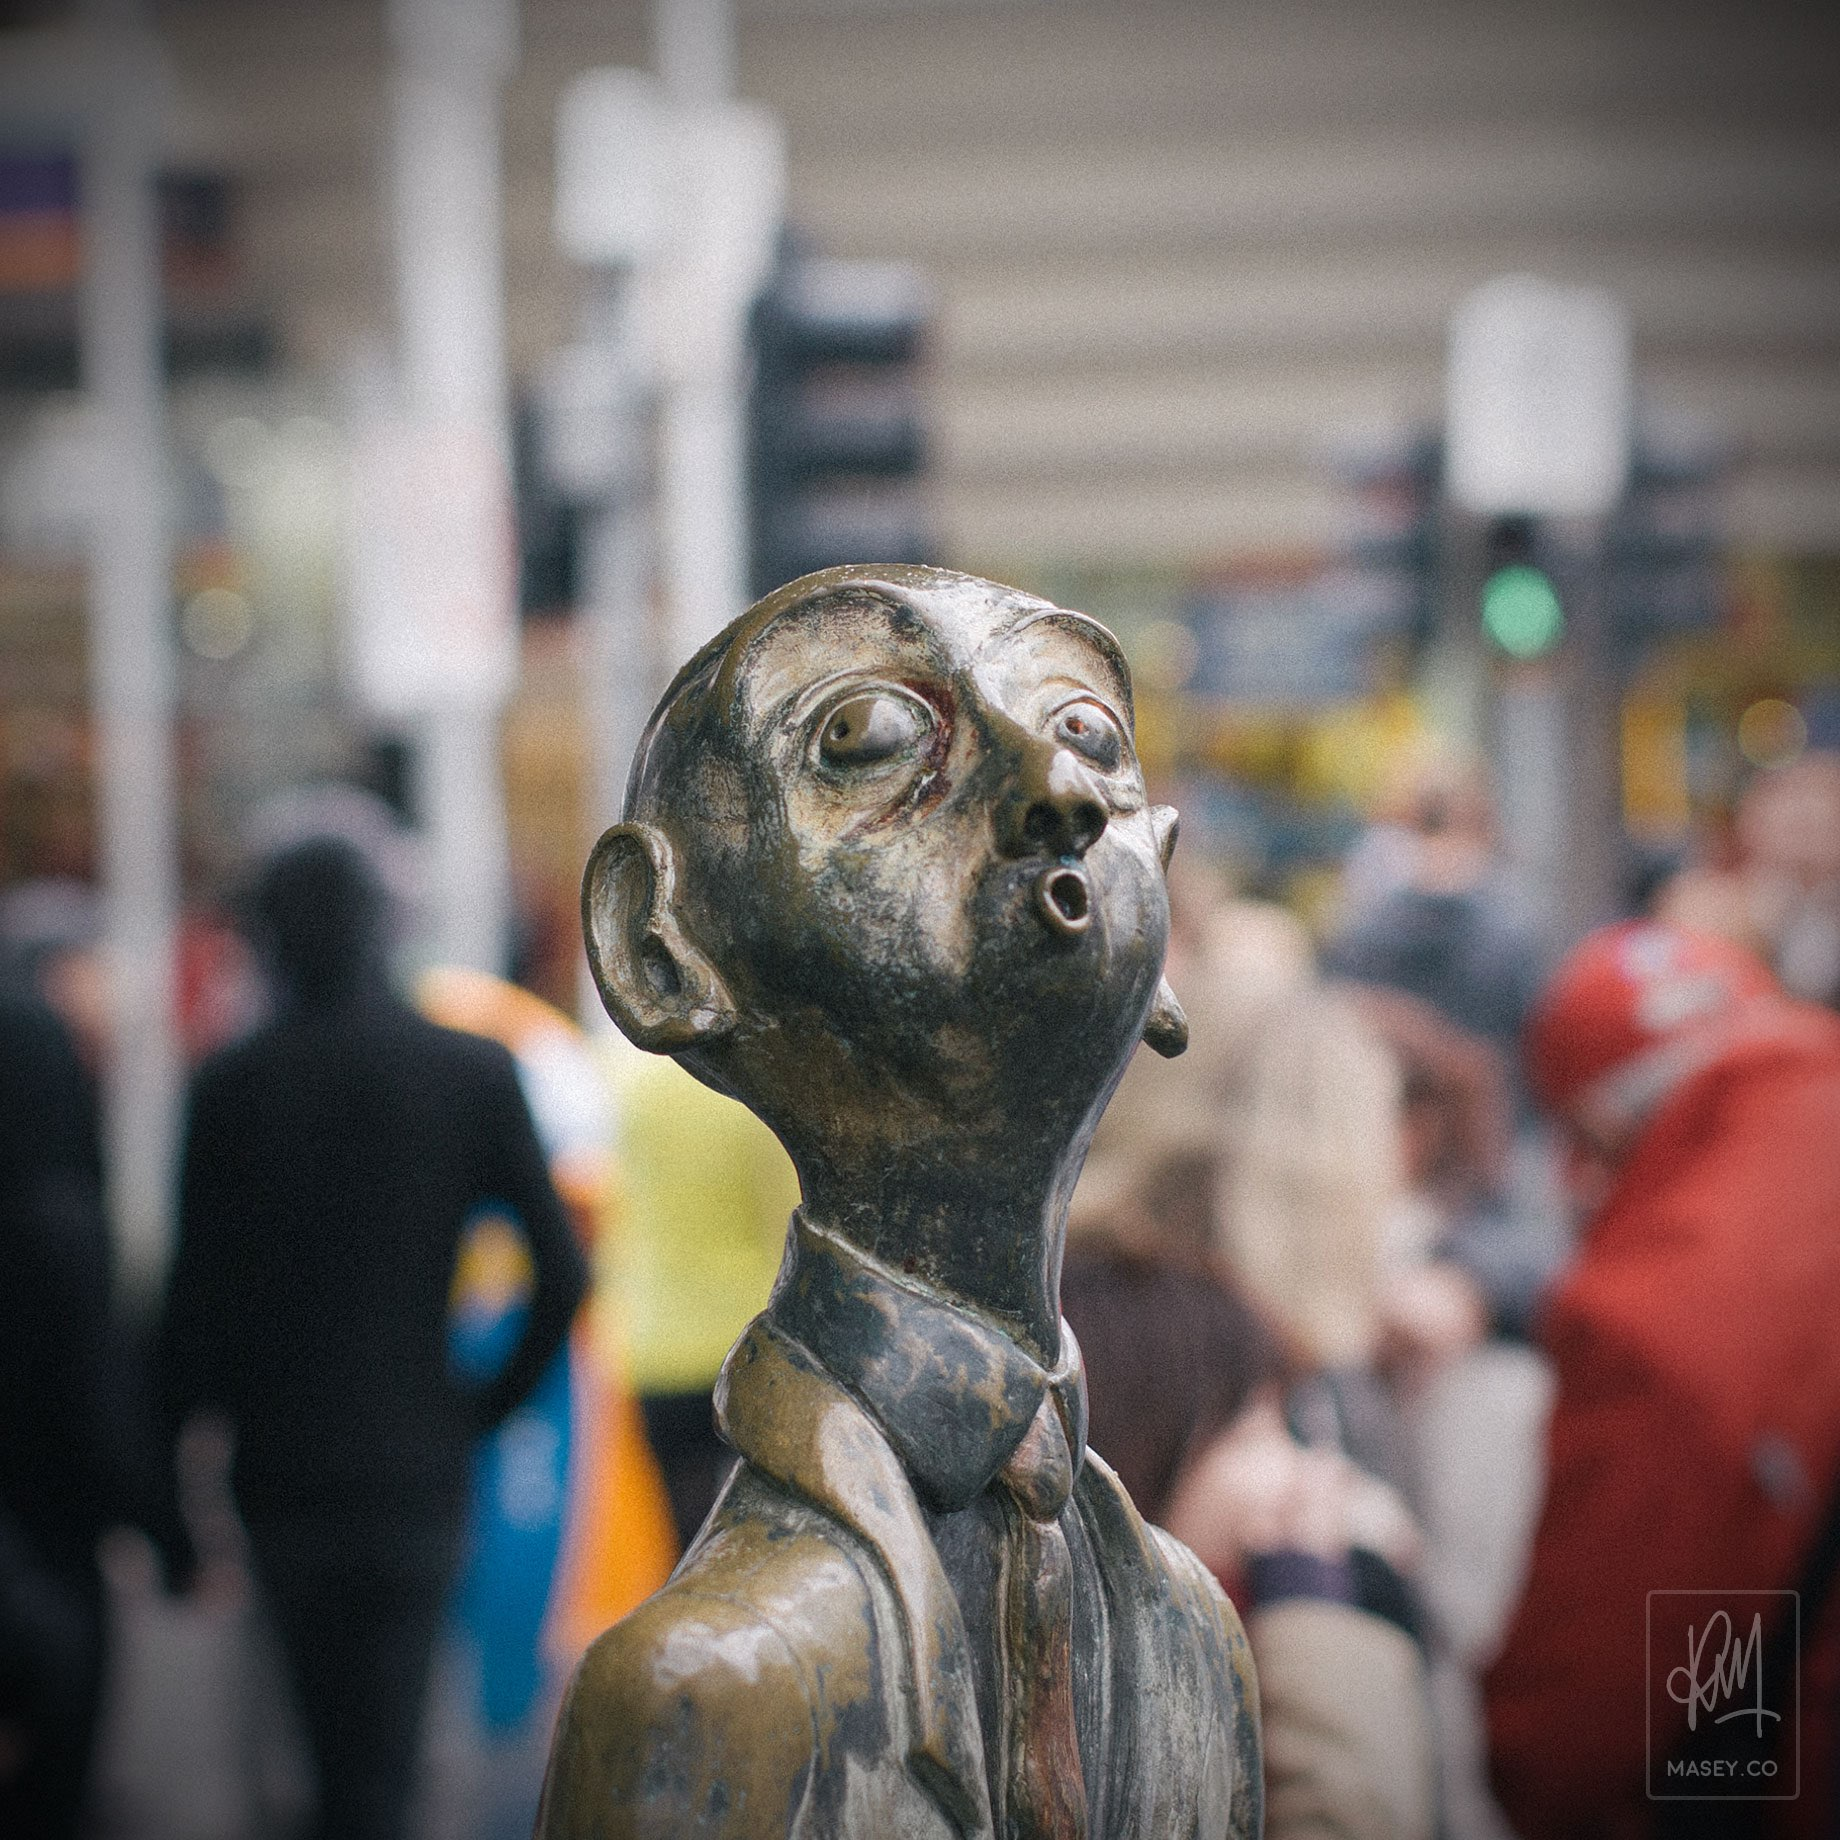 Melbourne Street Sculpture